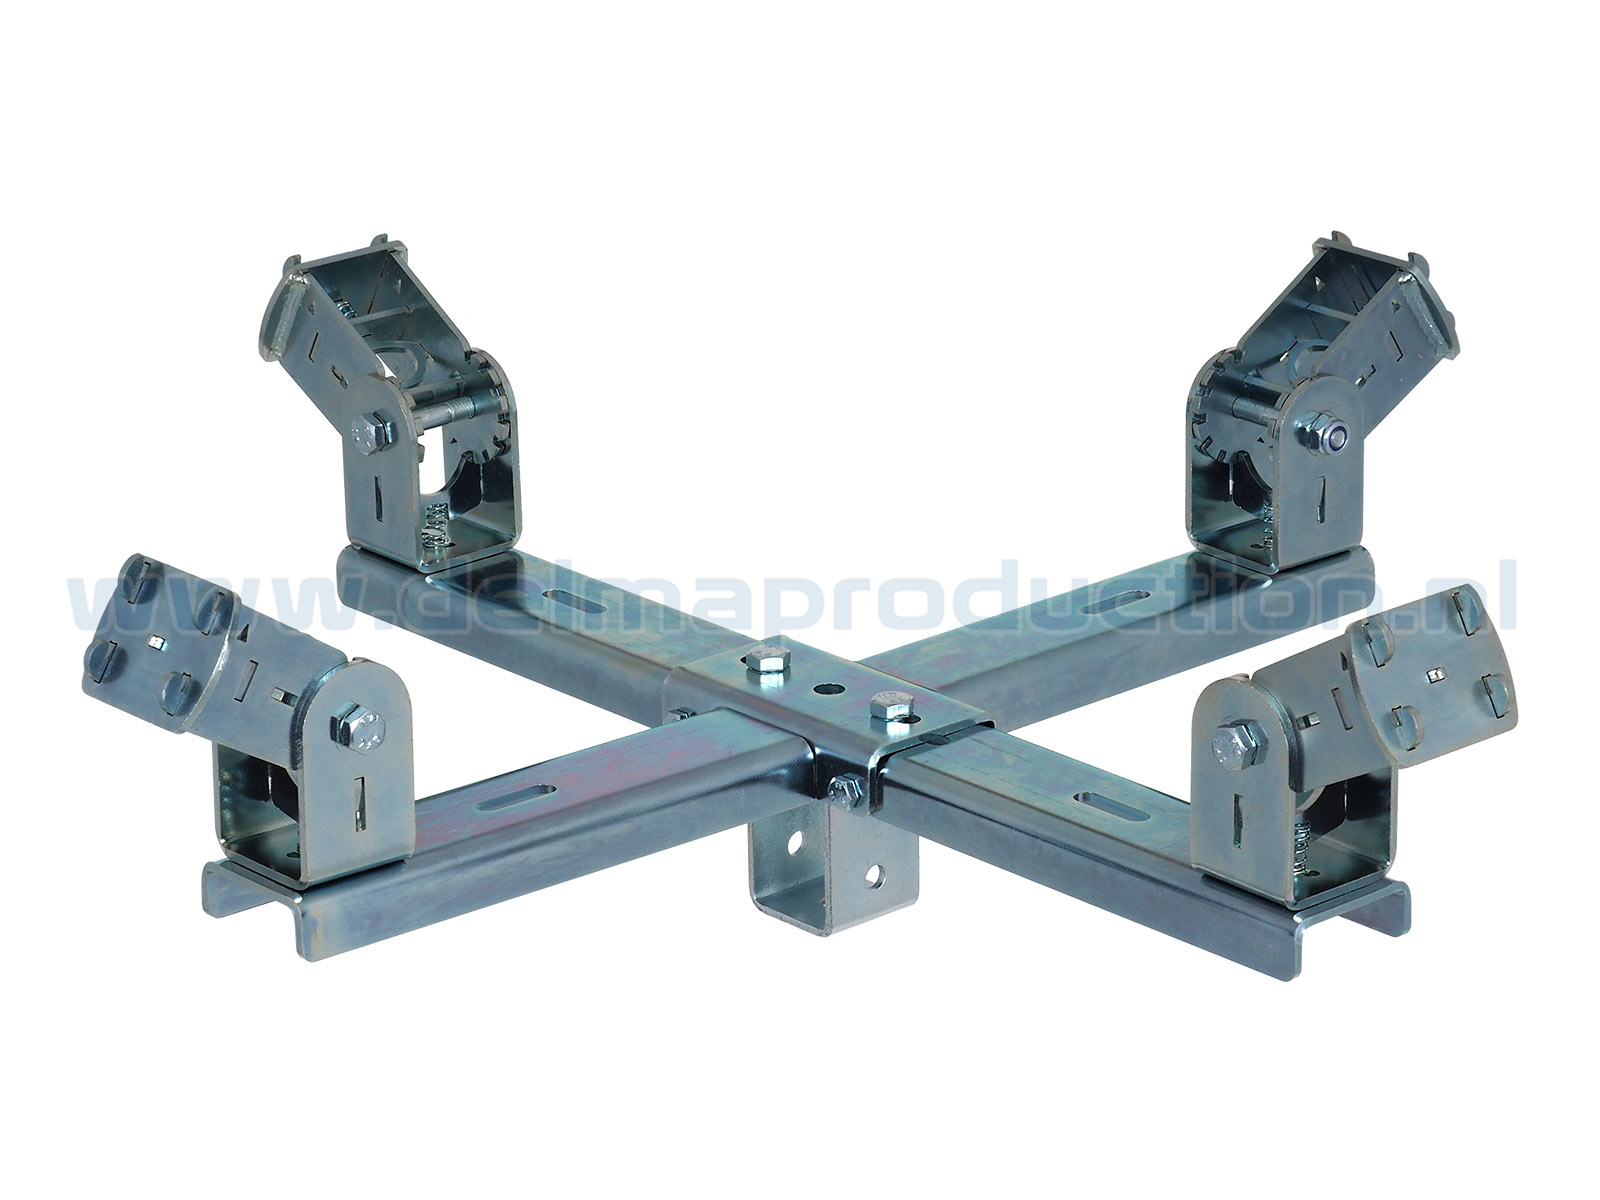 Quattro mounting bracket for Tripod with Quick Release